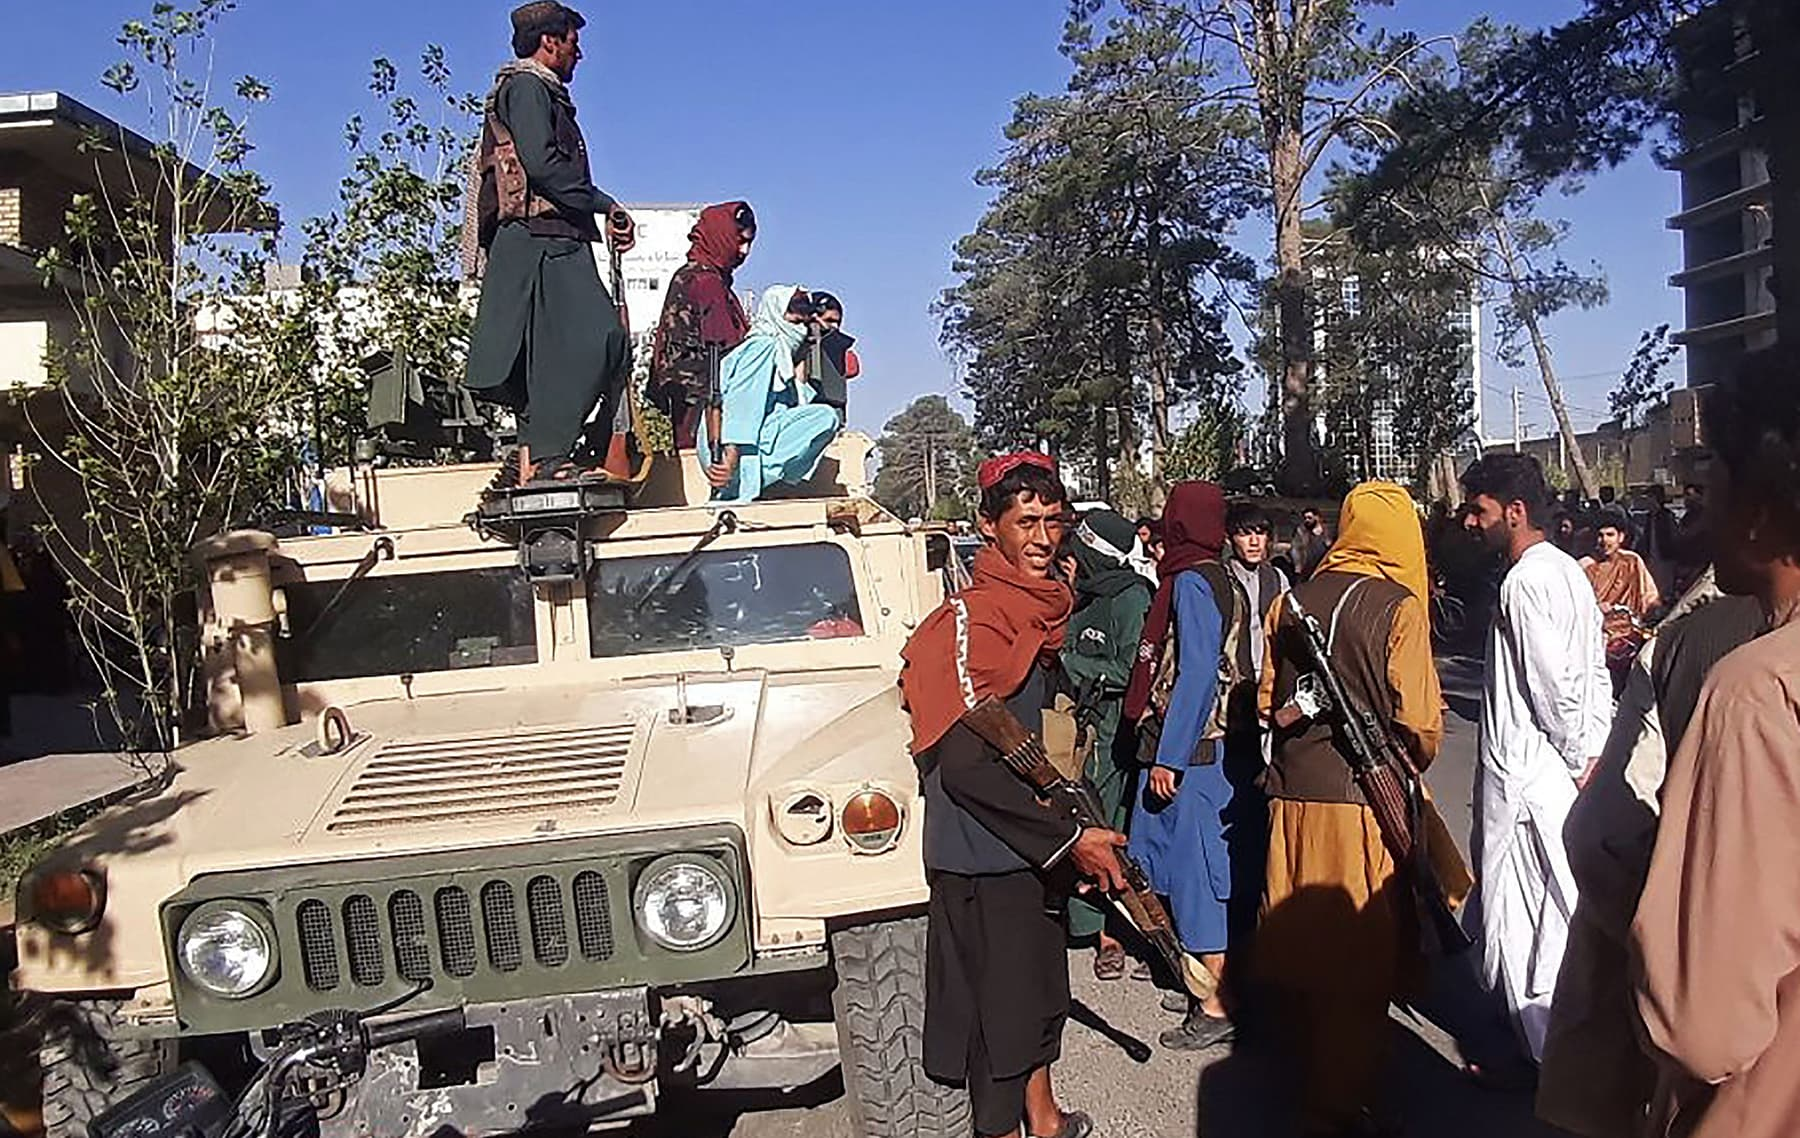 In this picture taken on August 13, Taliban fighters stand guard along the roadside in Herat, Afghanistan's third-biggest city, after government forces pulled out the day before following weeks of being under siege. — AFP